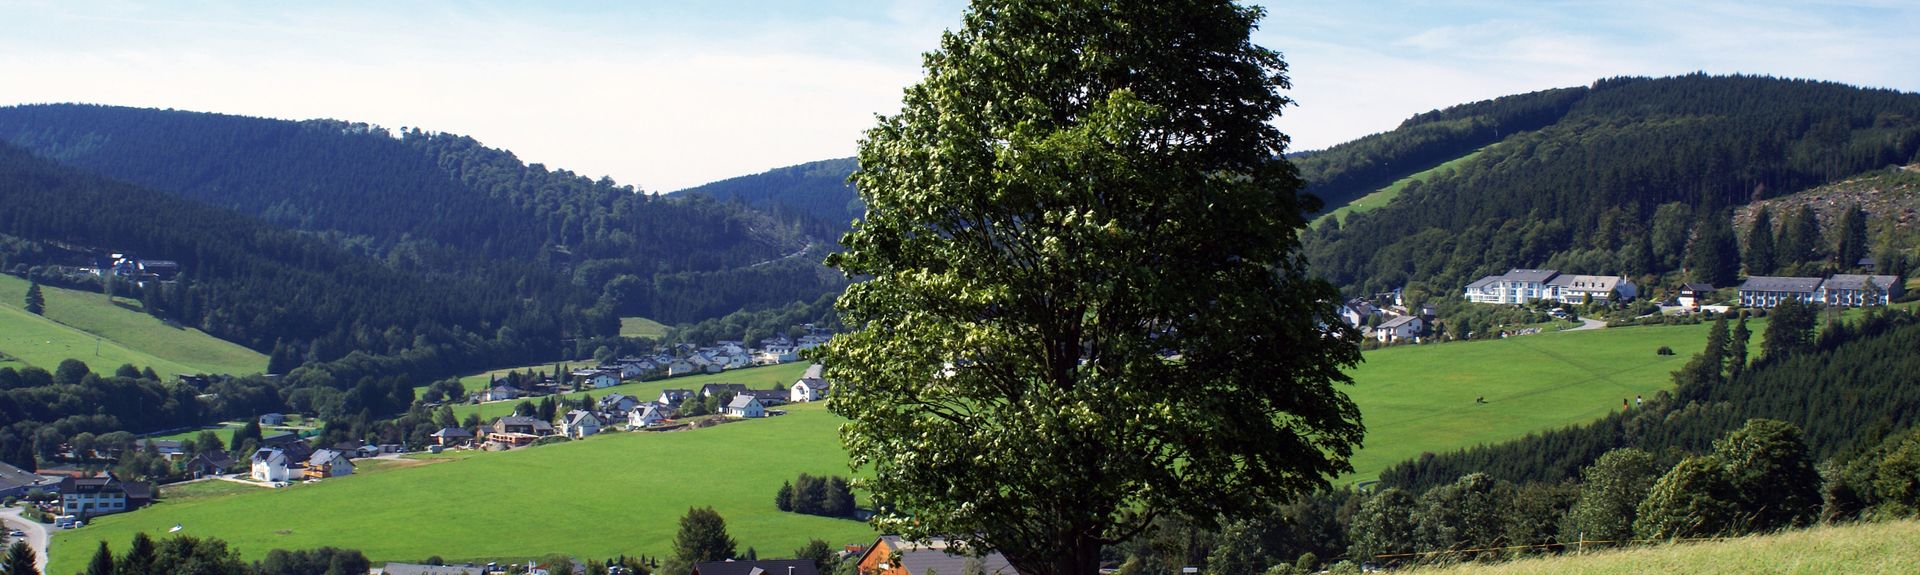 Willingen (Upland), Hessen, Germany